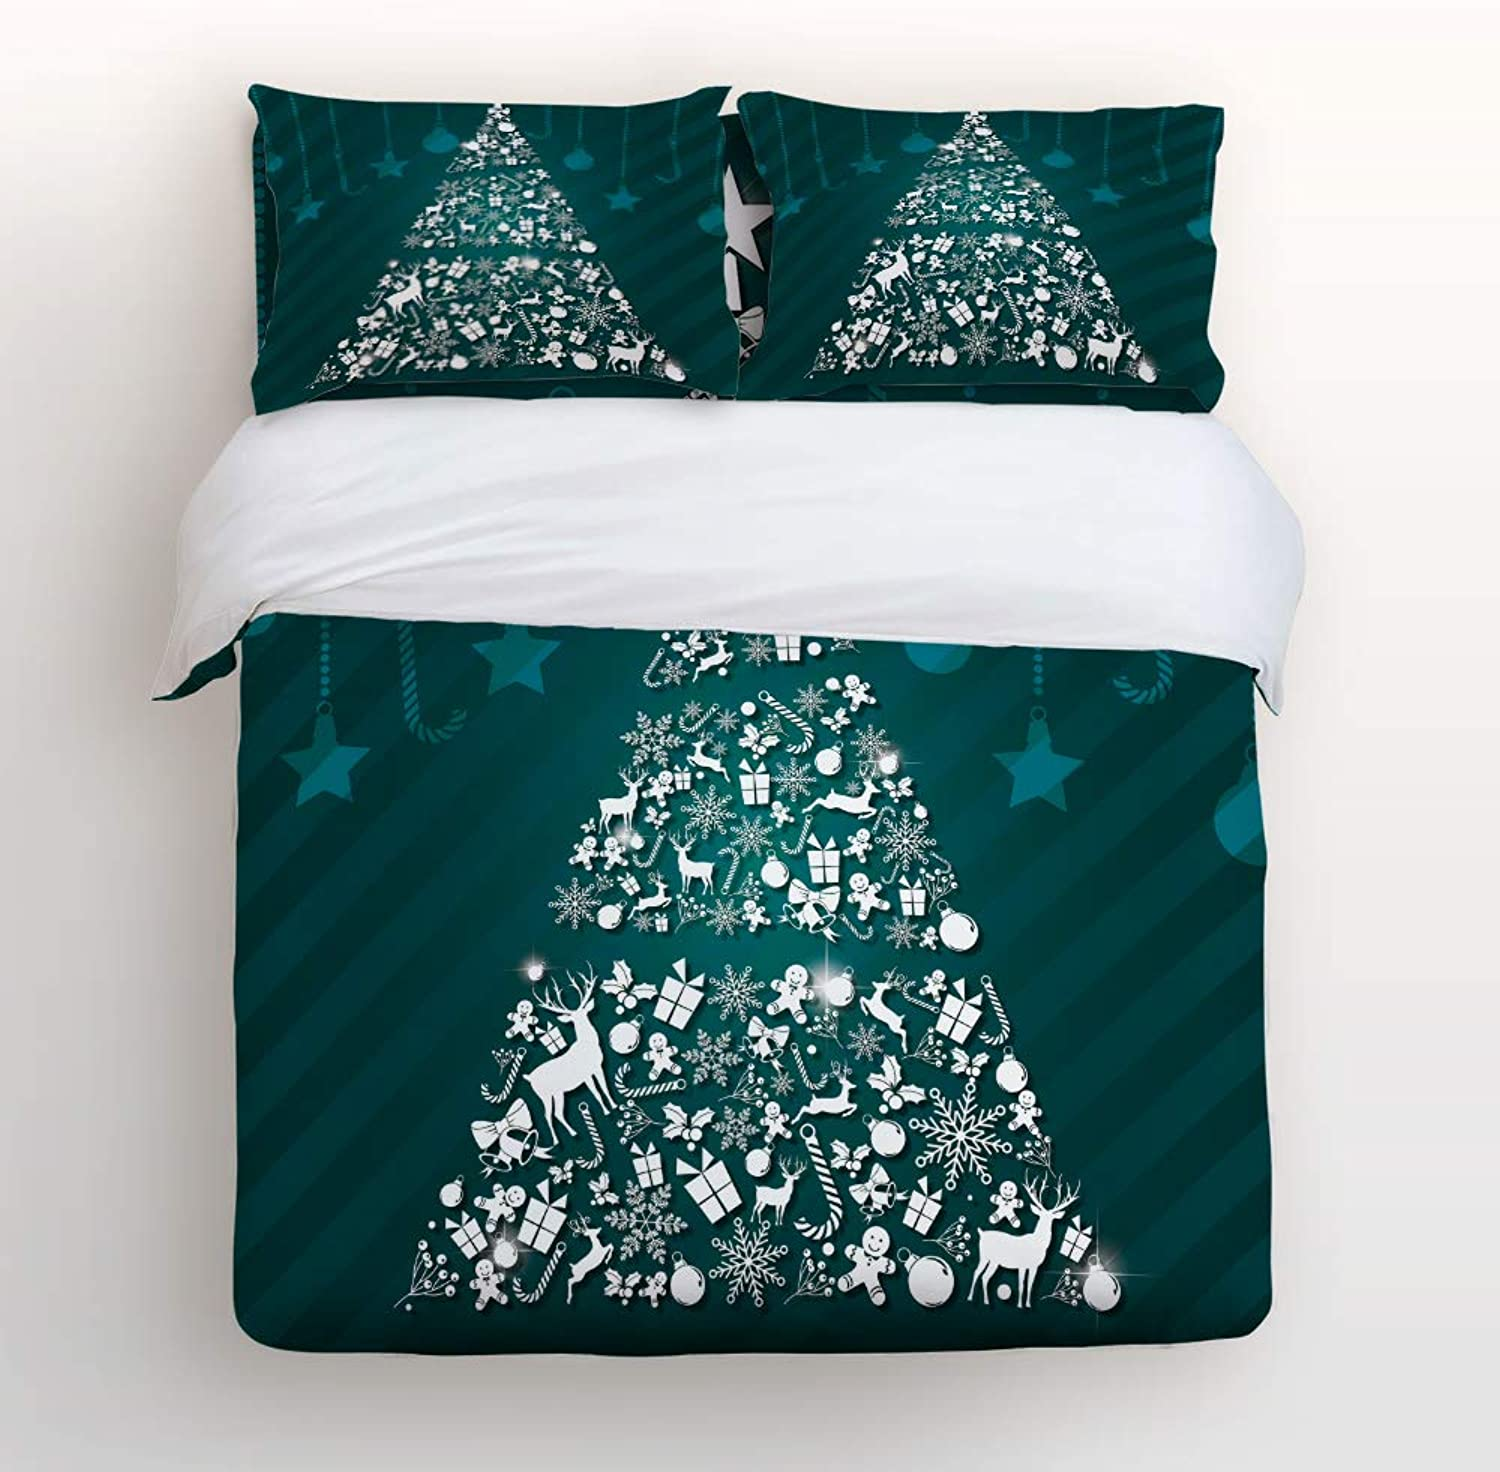 LEO BON Duvet Cover Set Twin Size Christmas Theme,Green Dream Christmas Tree Floral Duvet Cover and Pillow Shams Bed Set